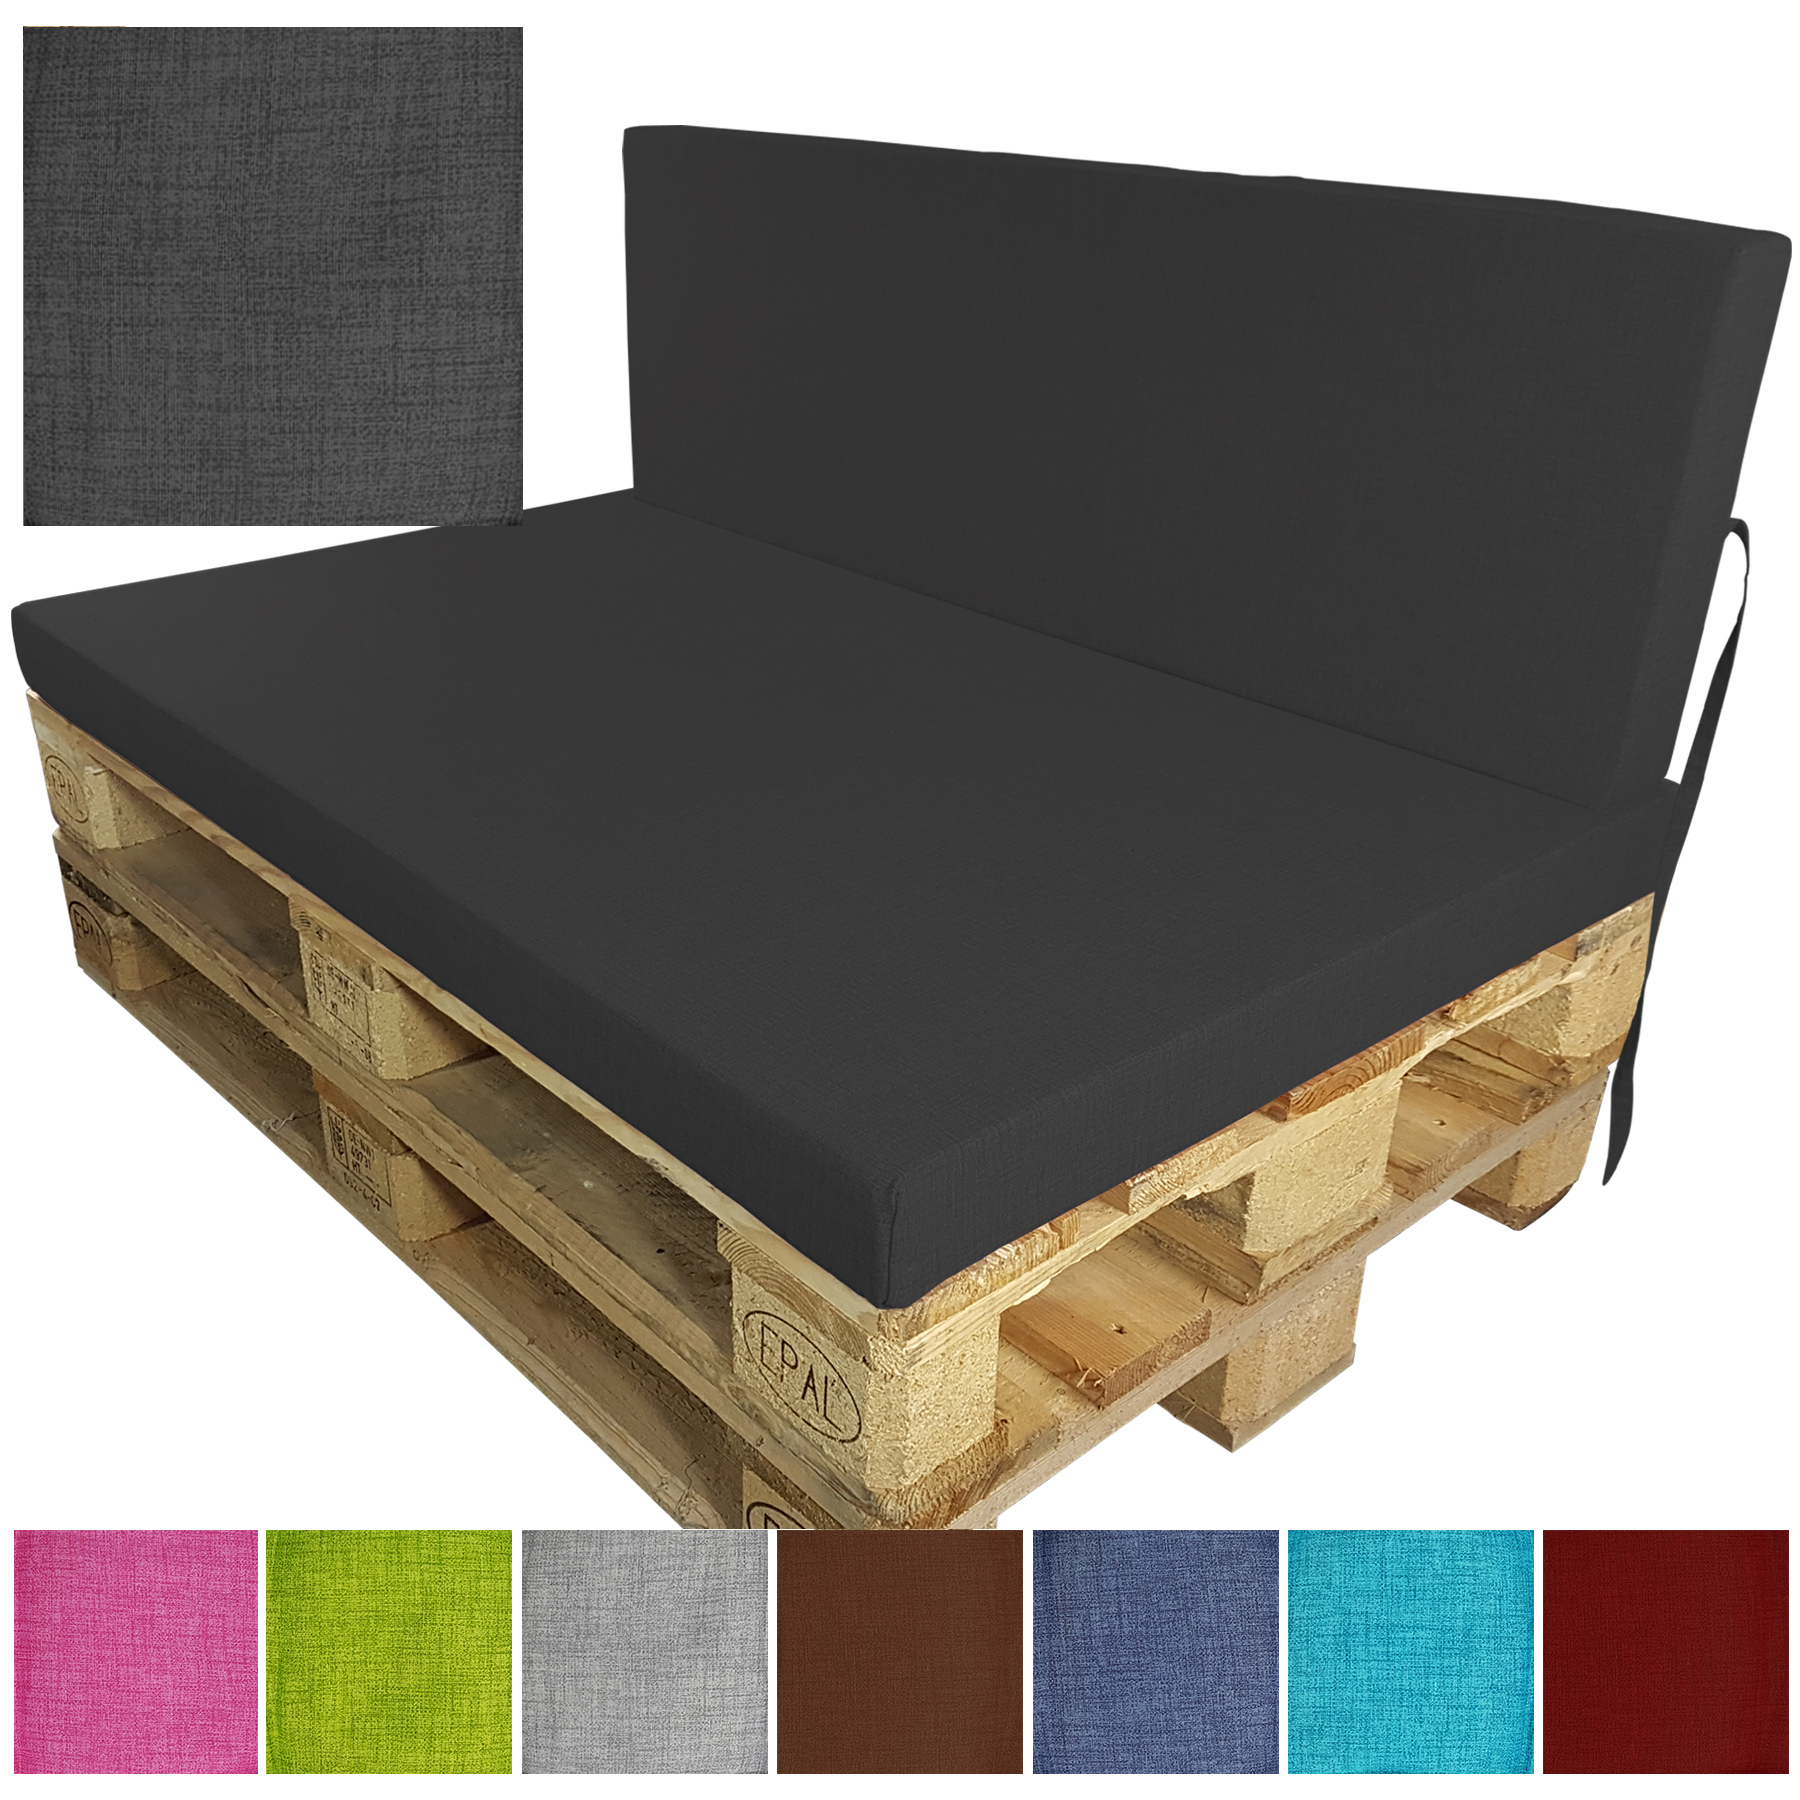 pallet cushions euro paletten polster outdoor sofa edition seat pad seat pad ebay. Black Bedroom Furniture Sets. Home Design Ideas